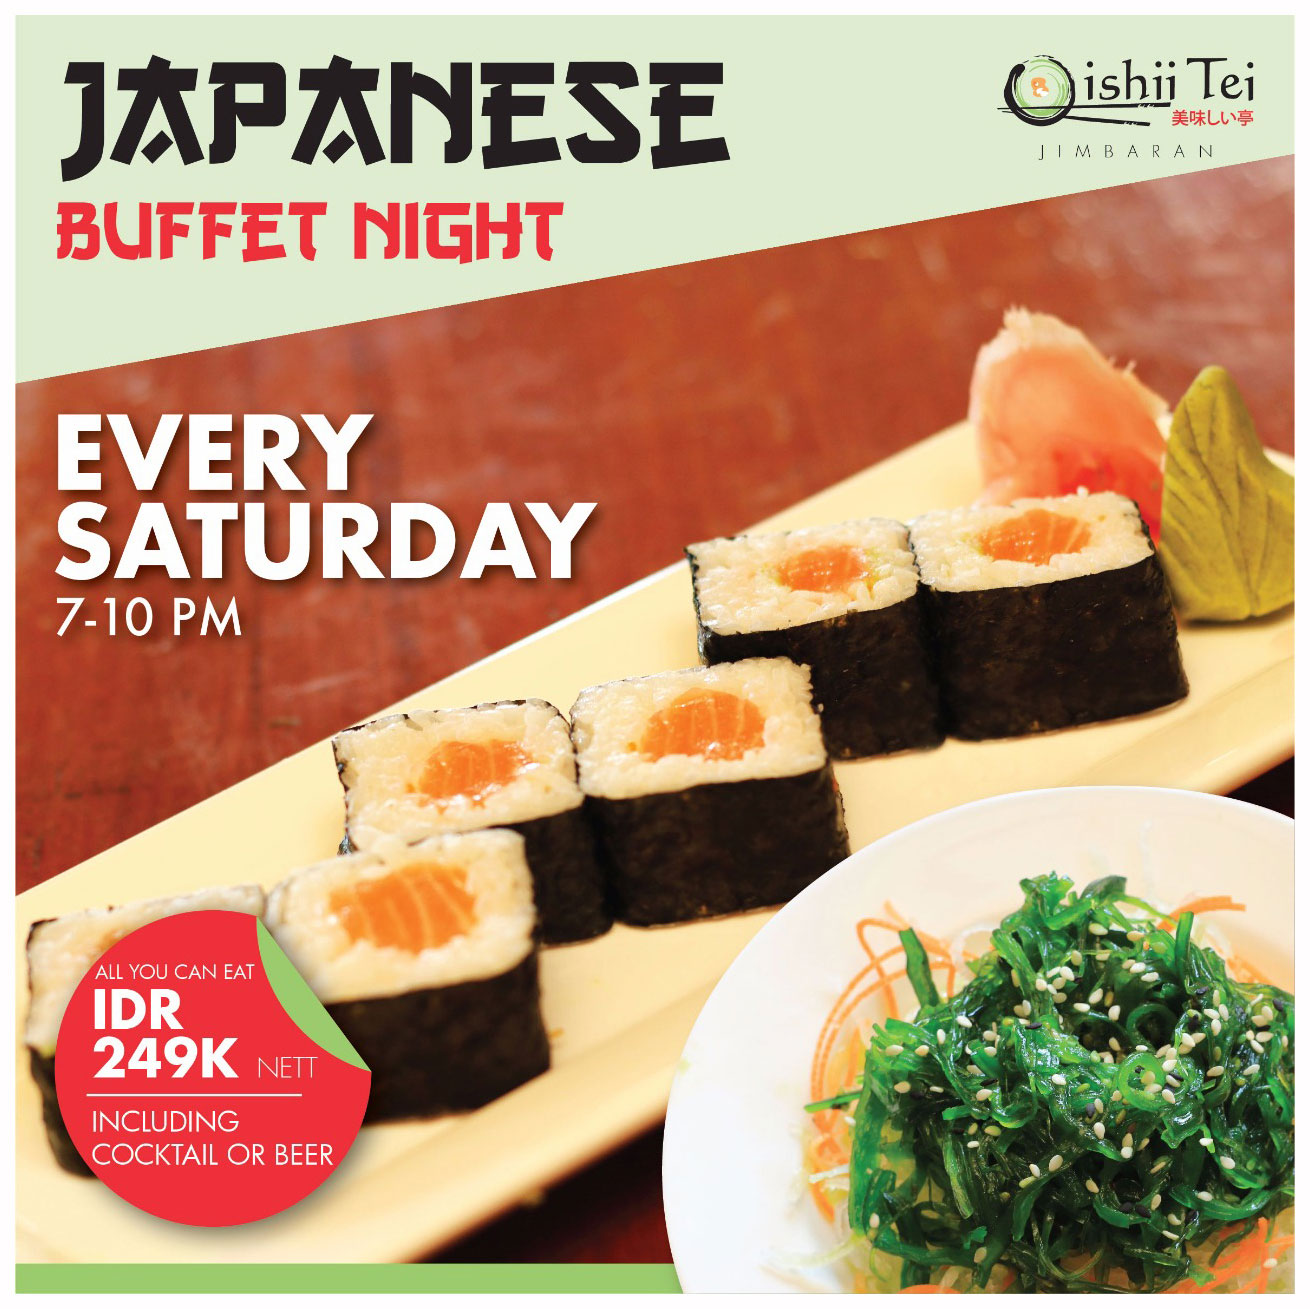 Oishi-Tei---Kupu-Kupu-Jimbaran---Japanese-Buffet-Night